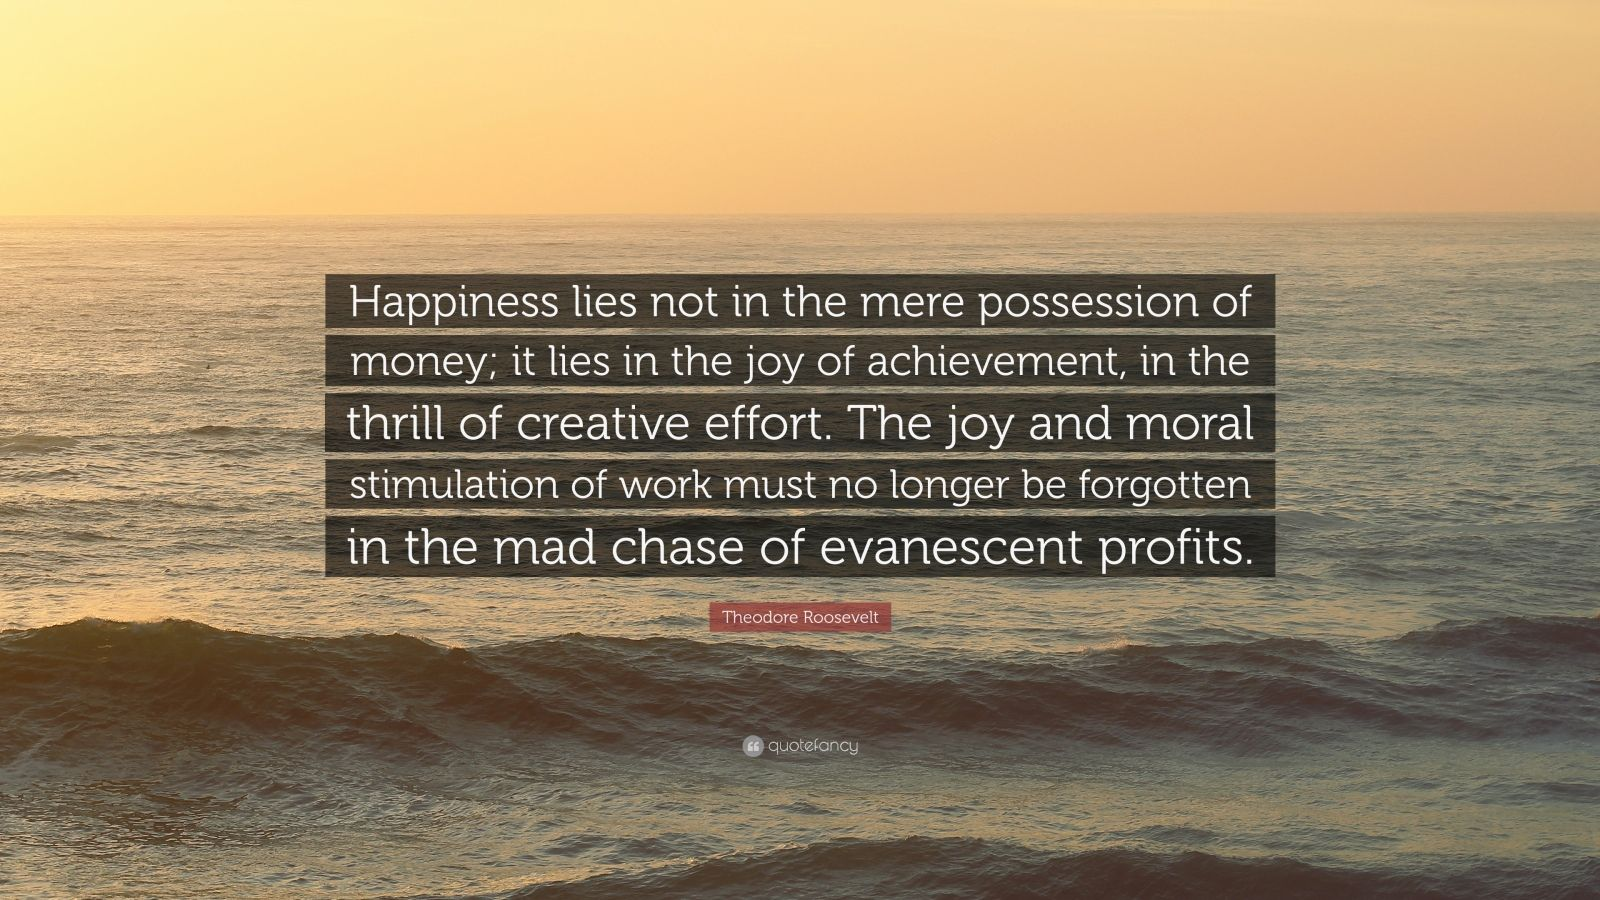 "Theodore Roosevelt Quote: ""Happiness lies not in the mere possession of money; it lies in the joy of achievement, in the thrill of creative effort. The joy and moral stimulation of work must no longer be forgotten in the mad chase of evanescent profits."""